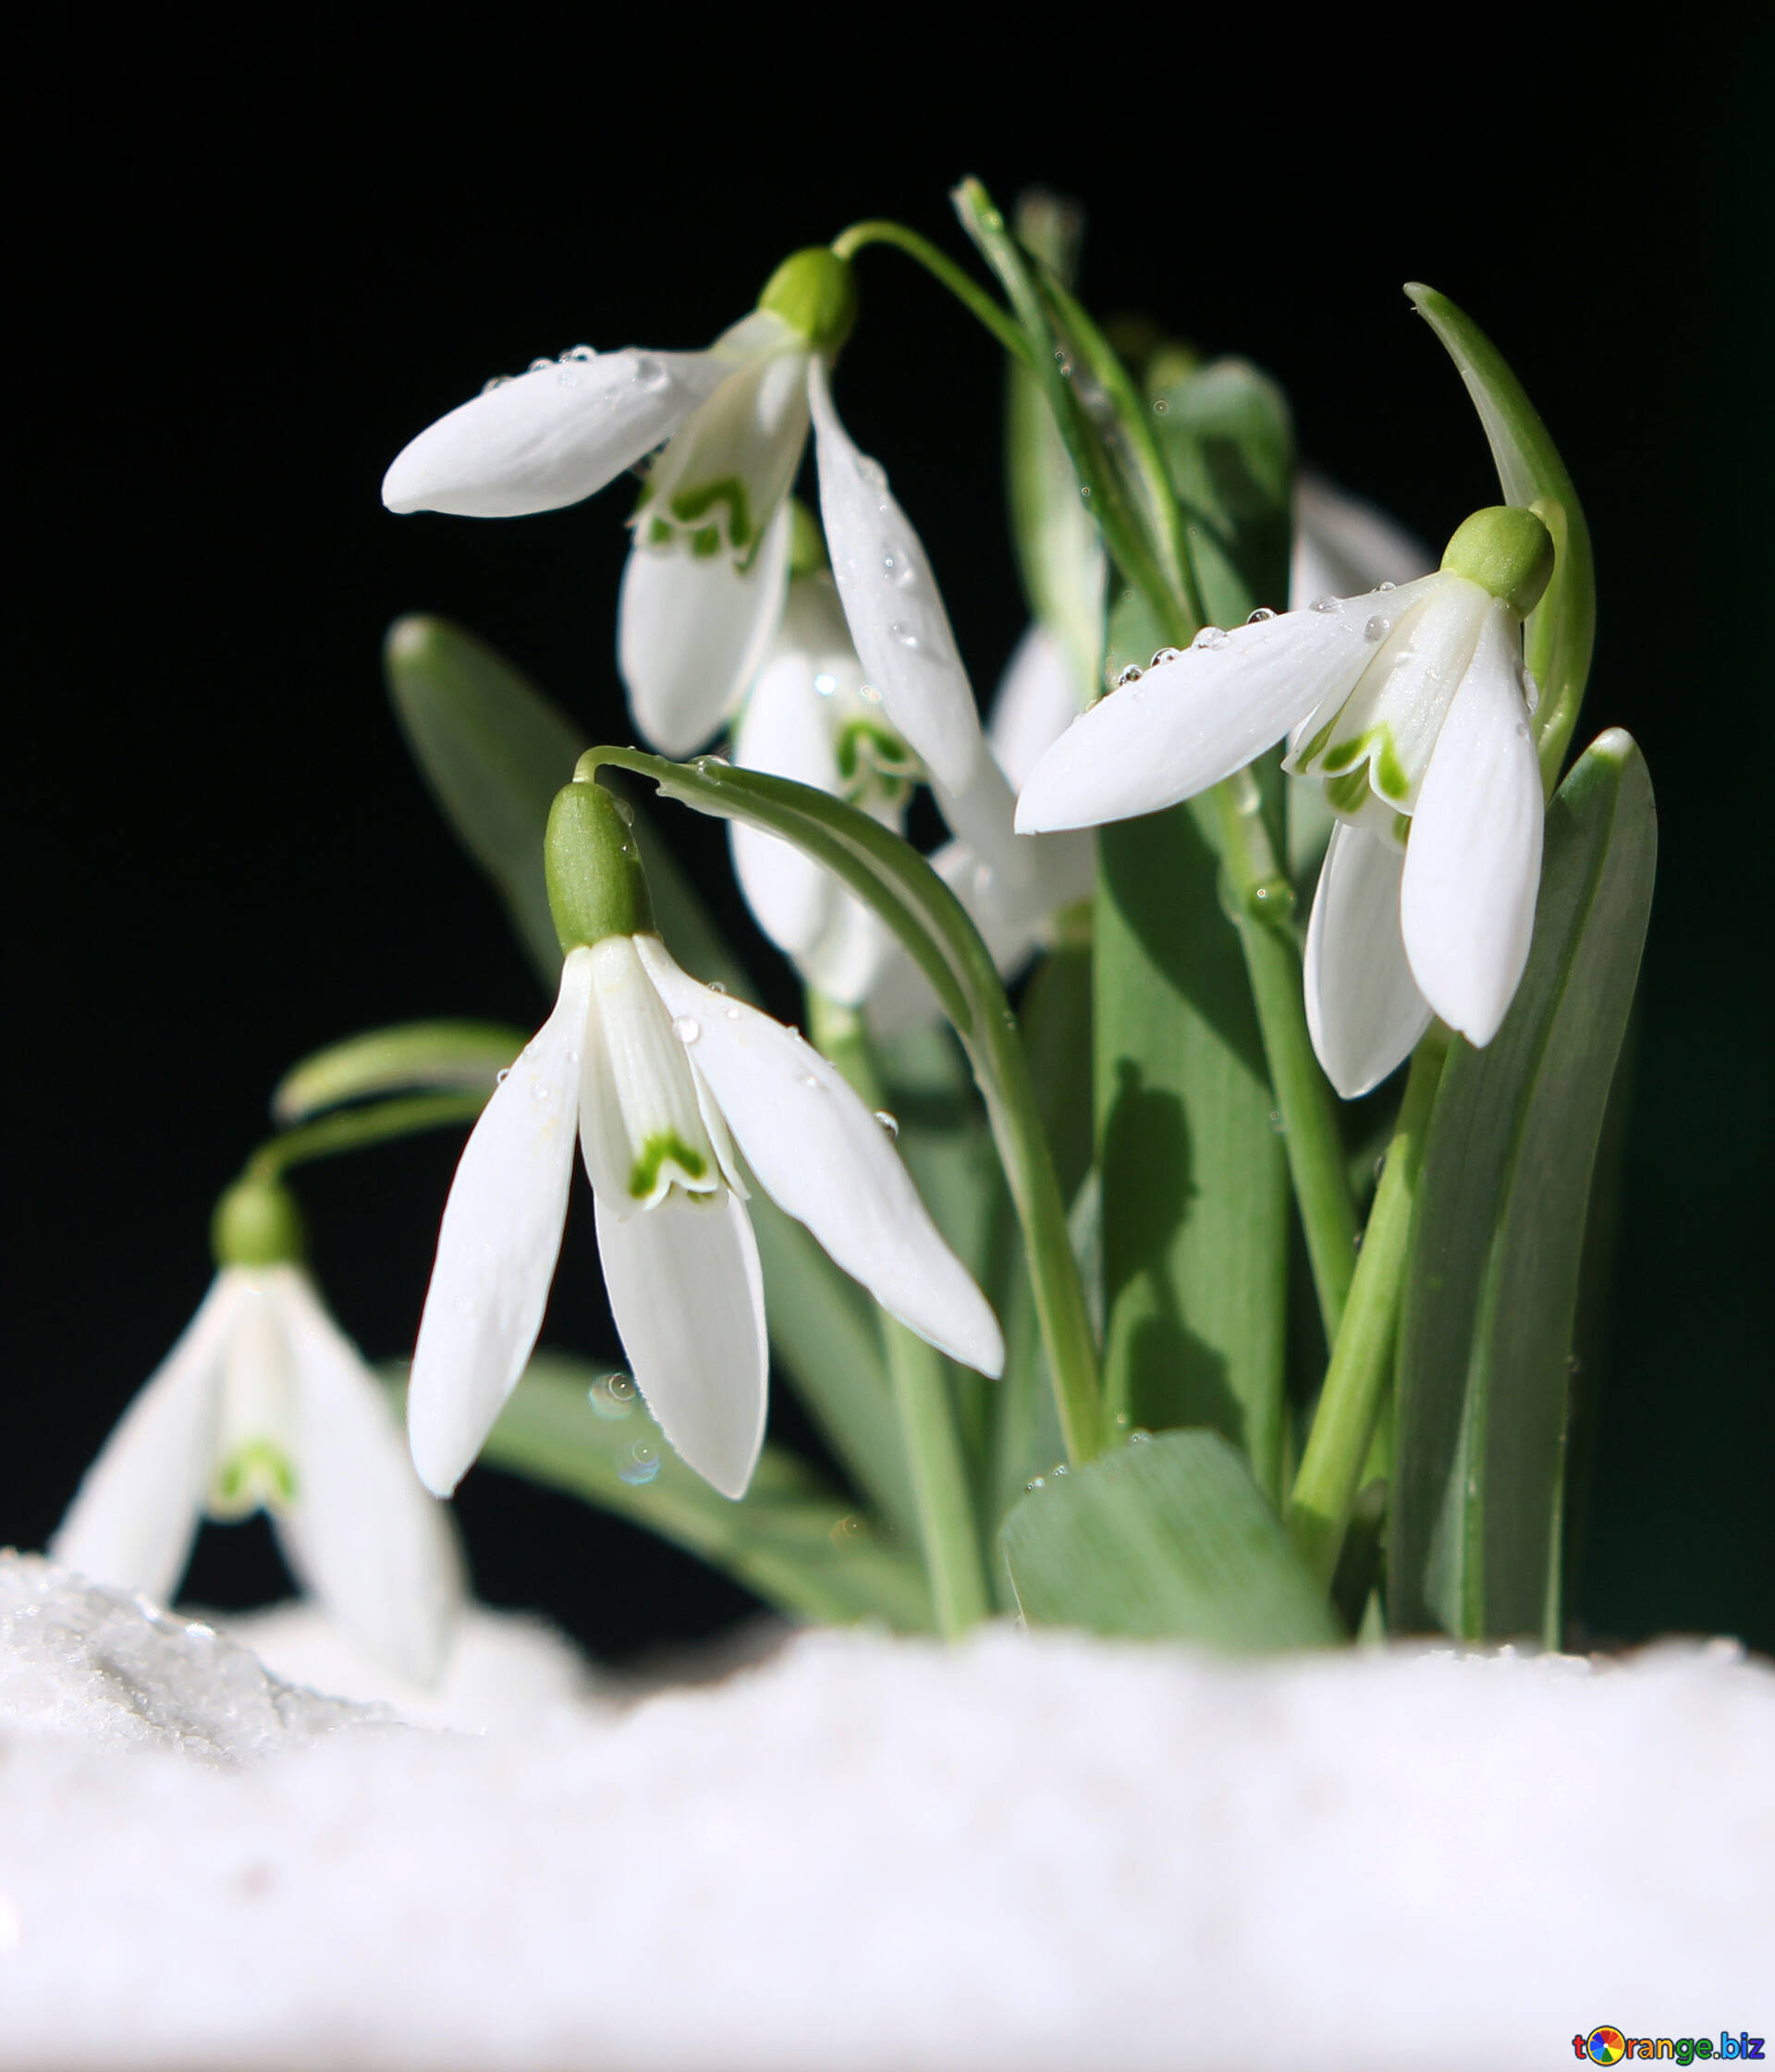 Flowers Snowdrops Desktop Wallpapers Pictures Of Spring Flowers